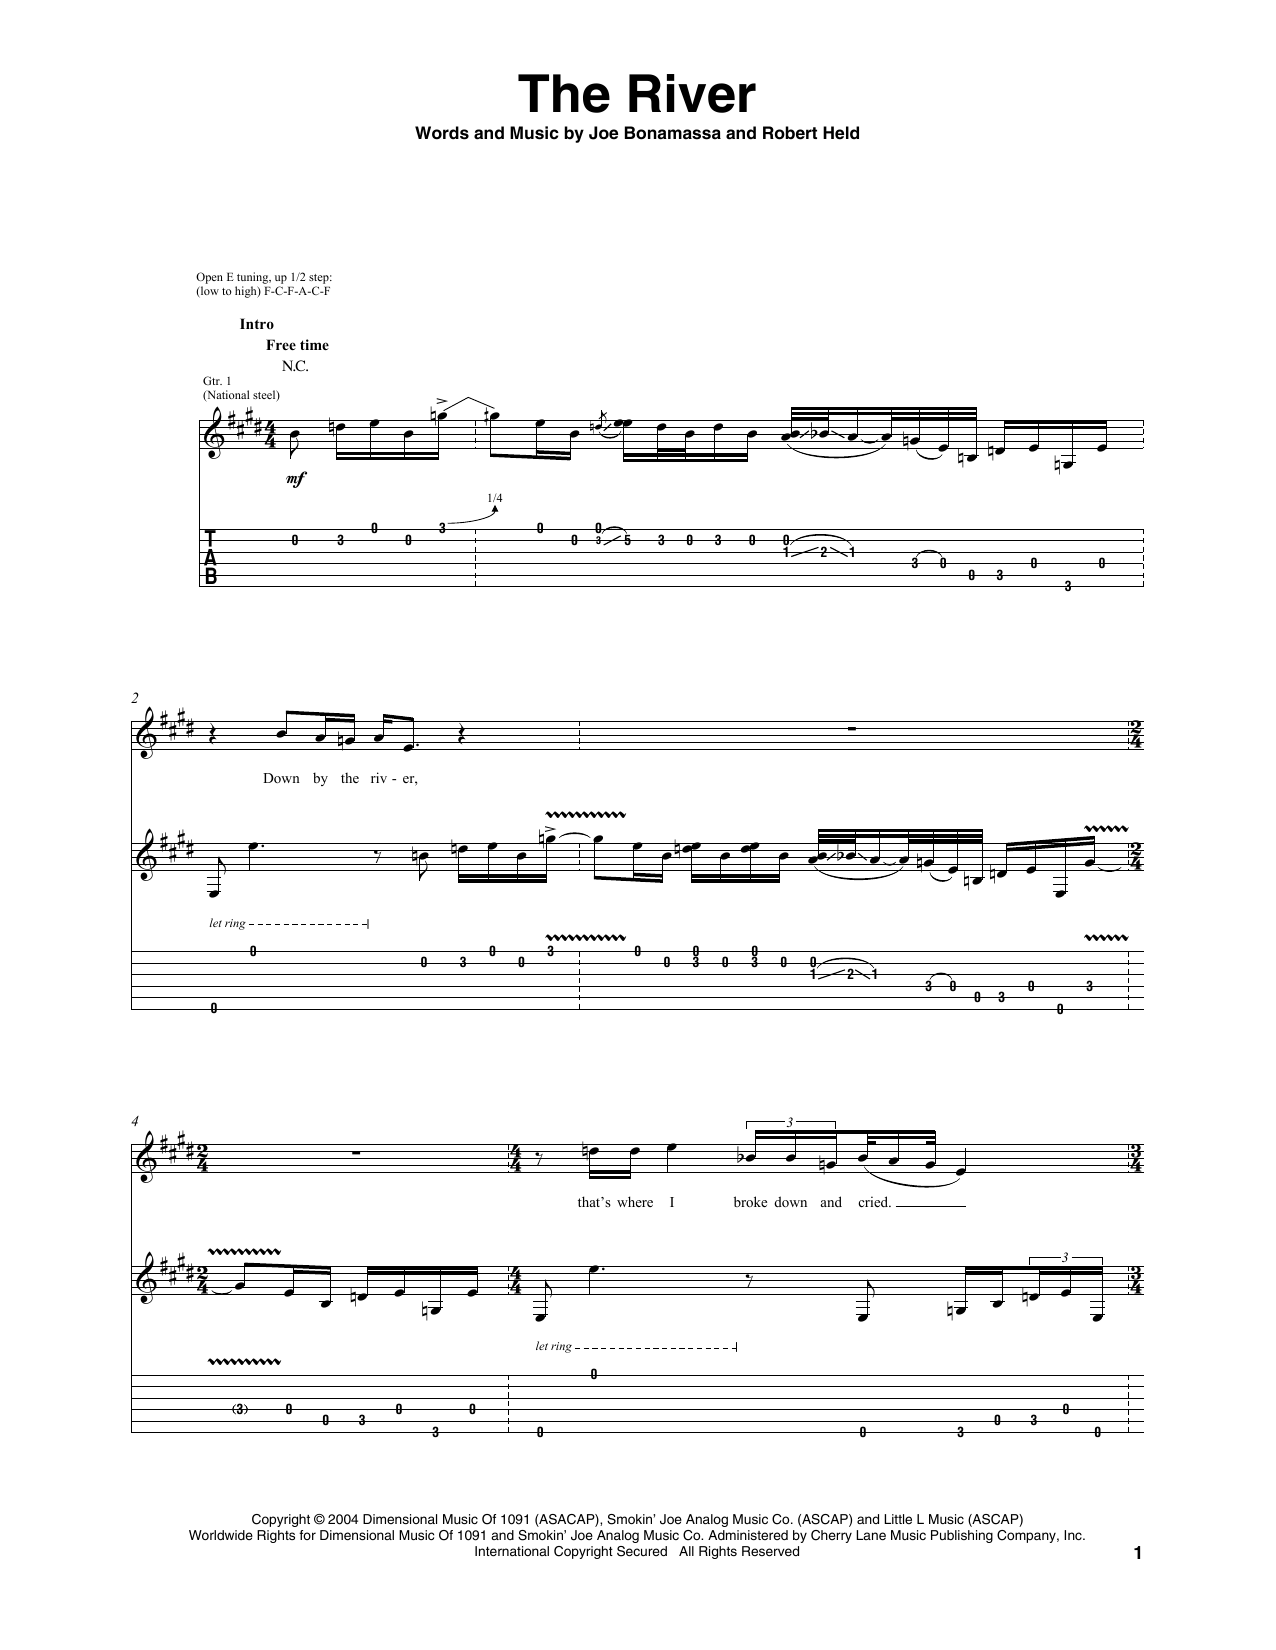 Sheet Music Digital Files To Print - Licensed Pop Digital Sheet Music